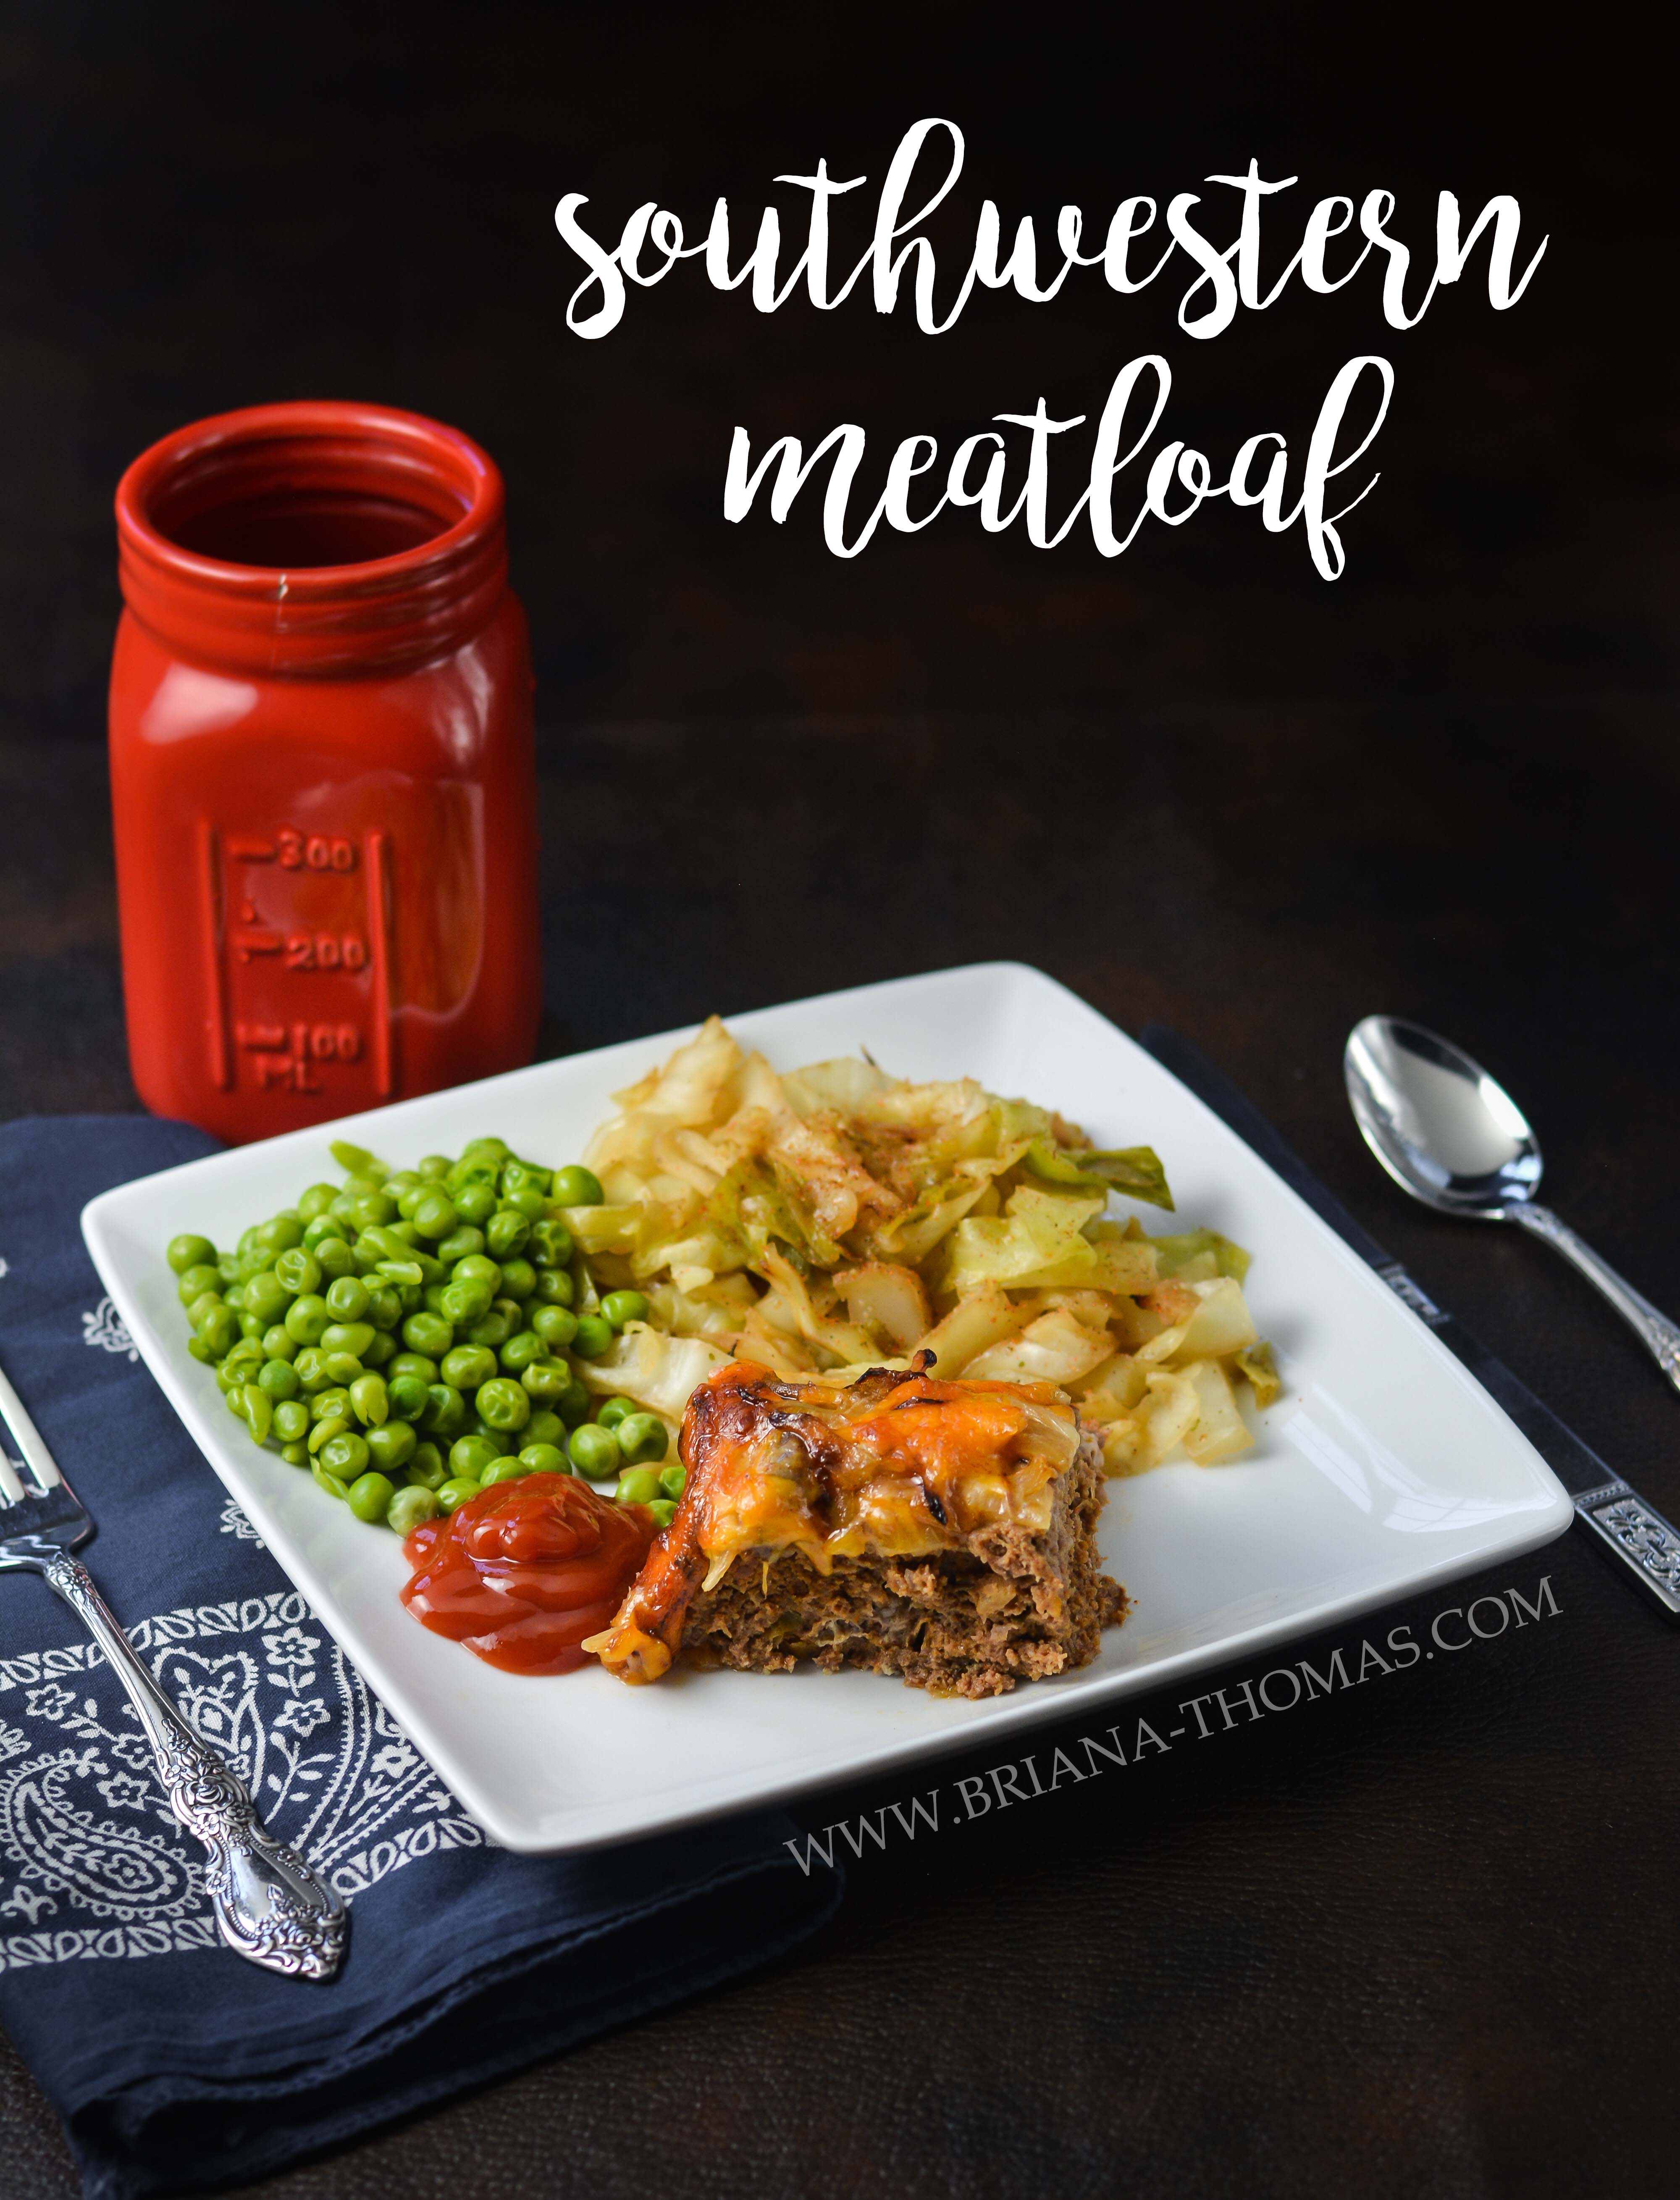 This Southwestern Meatloaf has a mouthwatering topping of fried onions and cheese that bubbles deliciously in the oven! THM:S, gluten/nut free, low carb